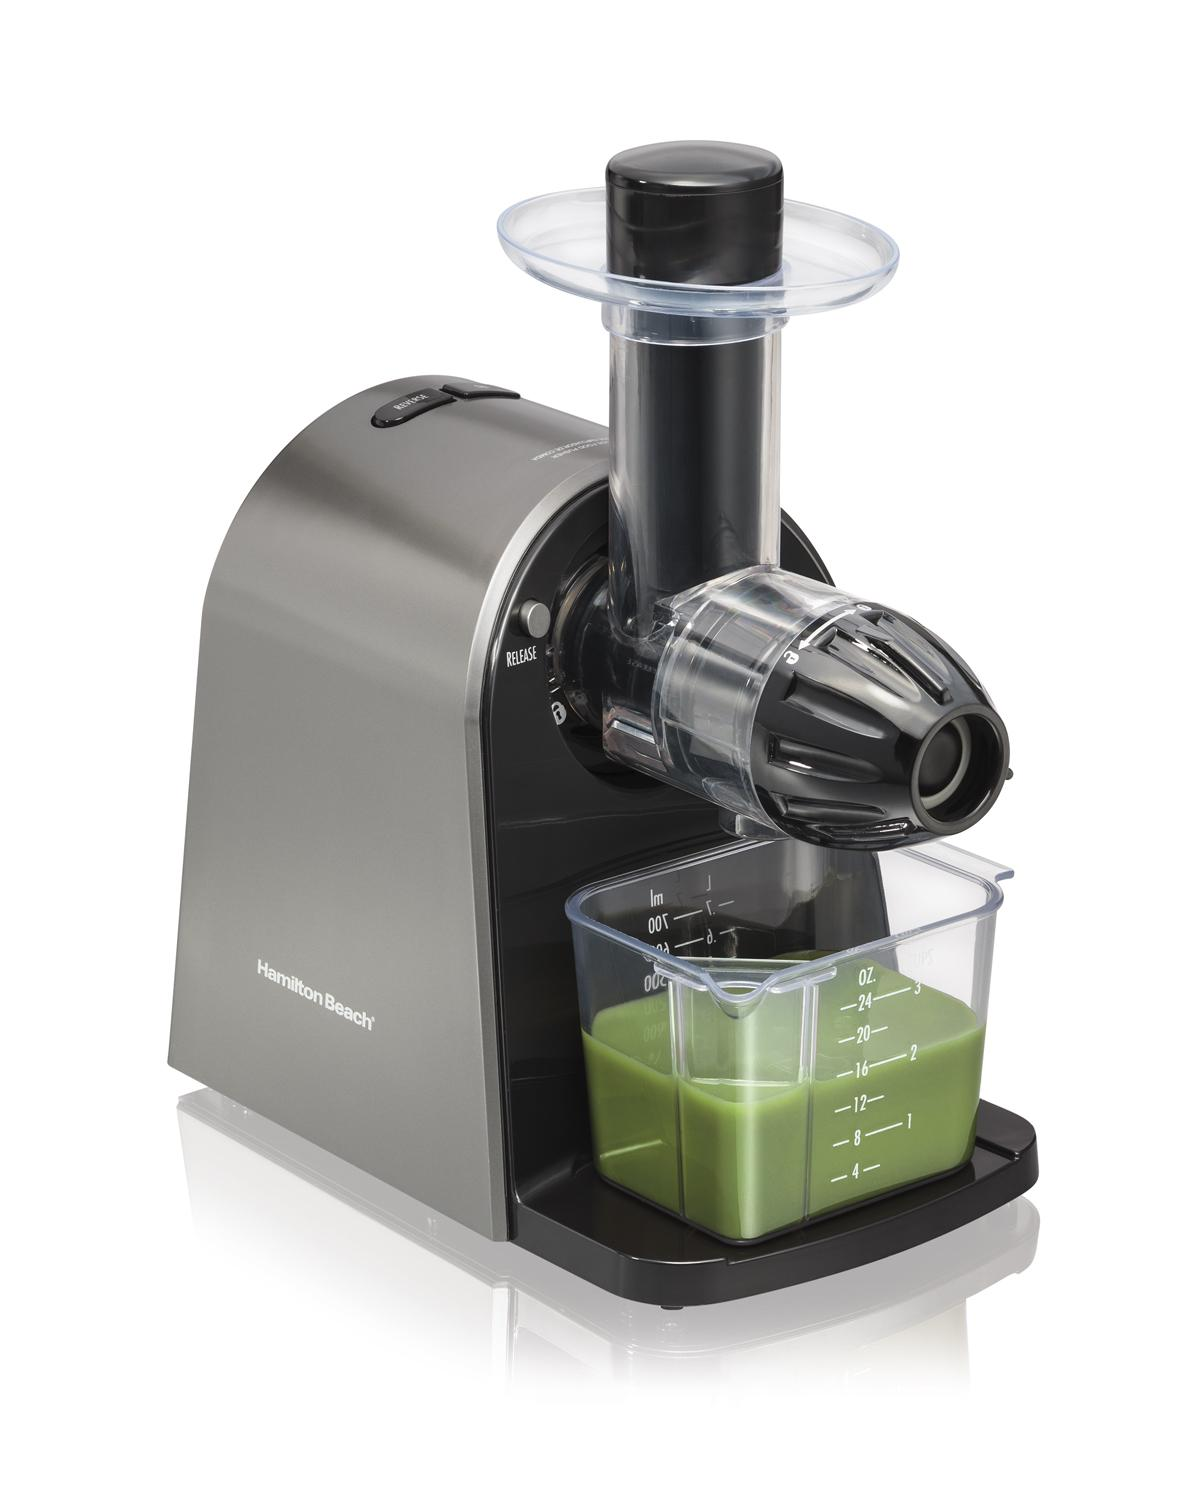 Wilfa Sj 150a Slow Juicer Review : juicer breville commercial cuisinart omega extractor slow juicers electric vegetable masticating